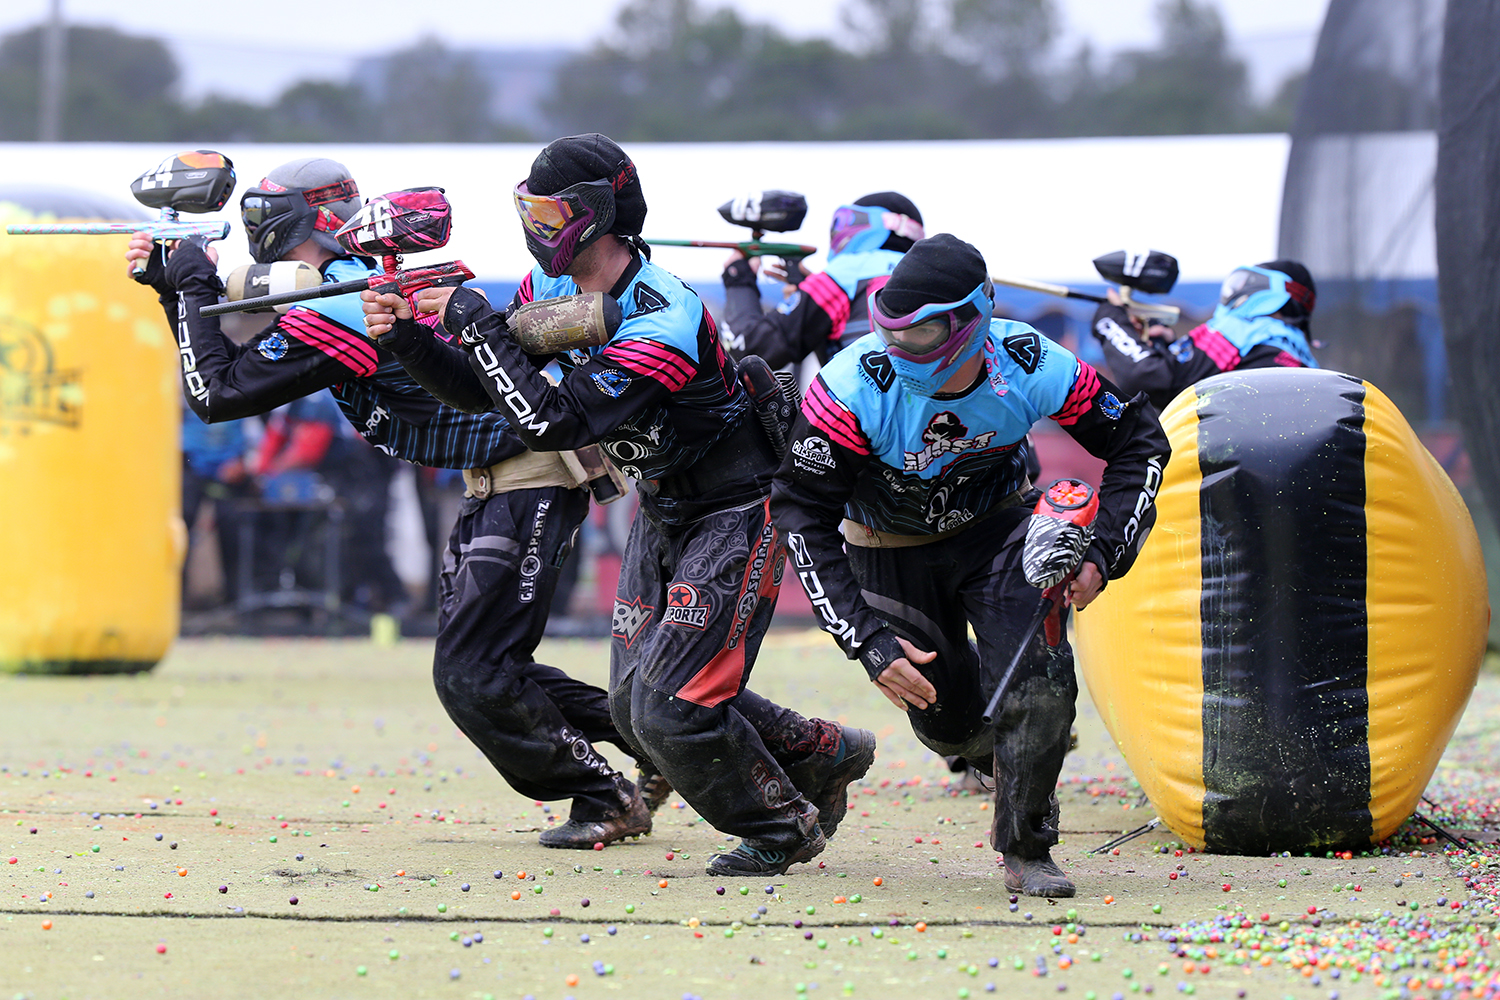 Finale del Campionato Italiano Paintball - 5 MAN